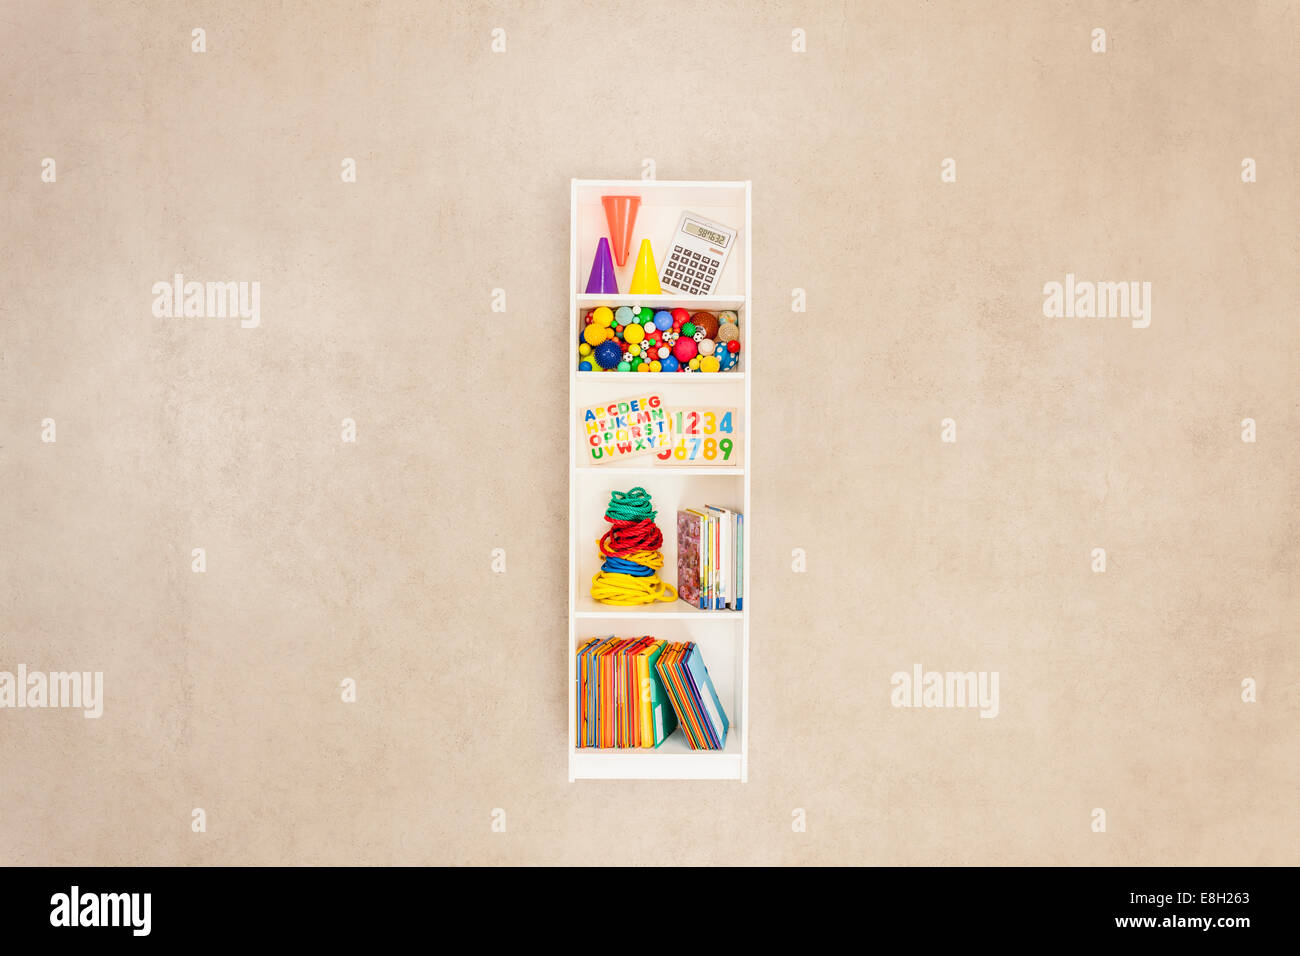 Shelf containing school items - Stock Image